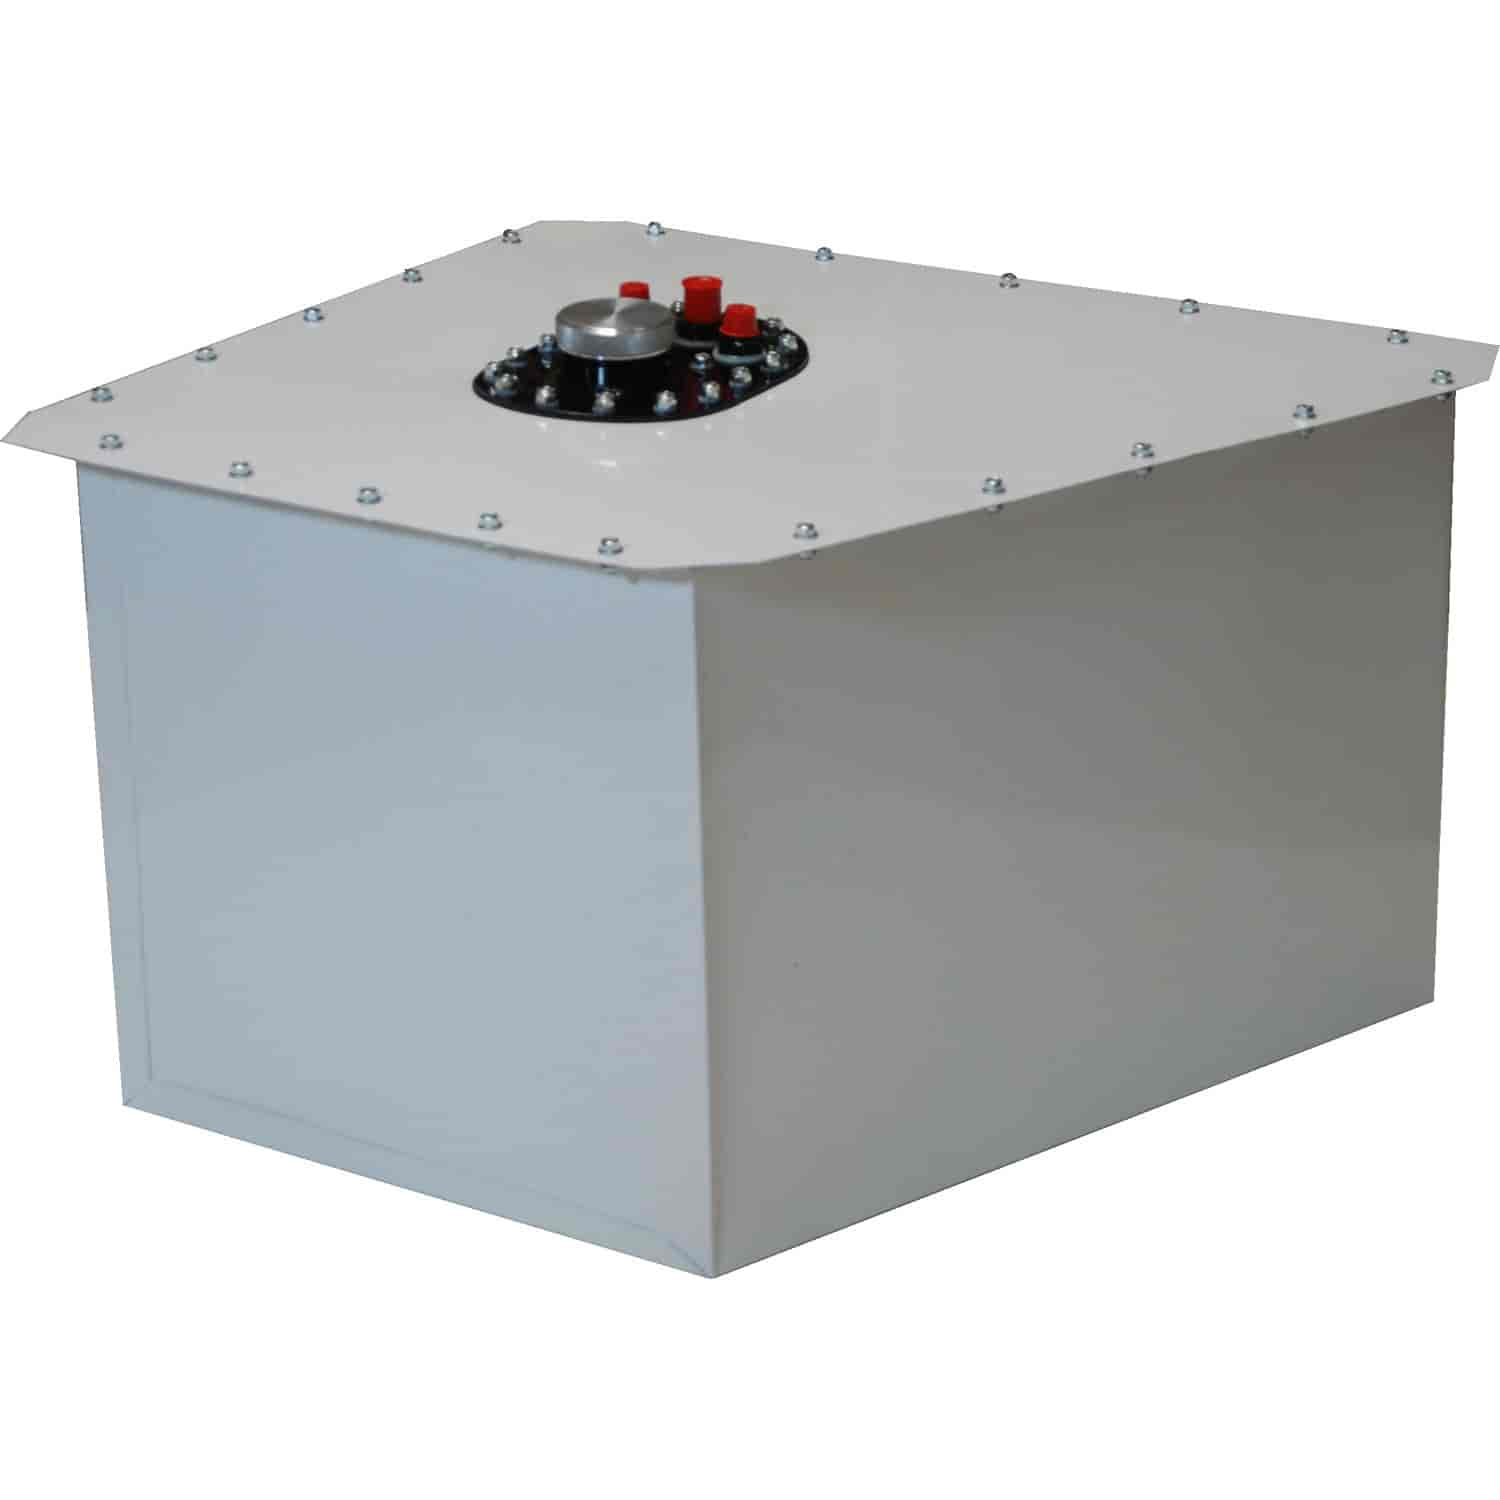 RCI Sidewedge Steel Fuel Cell Dimensions: Length: 21 5